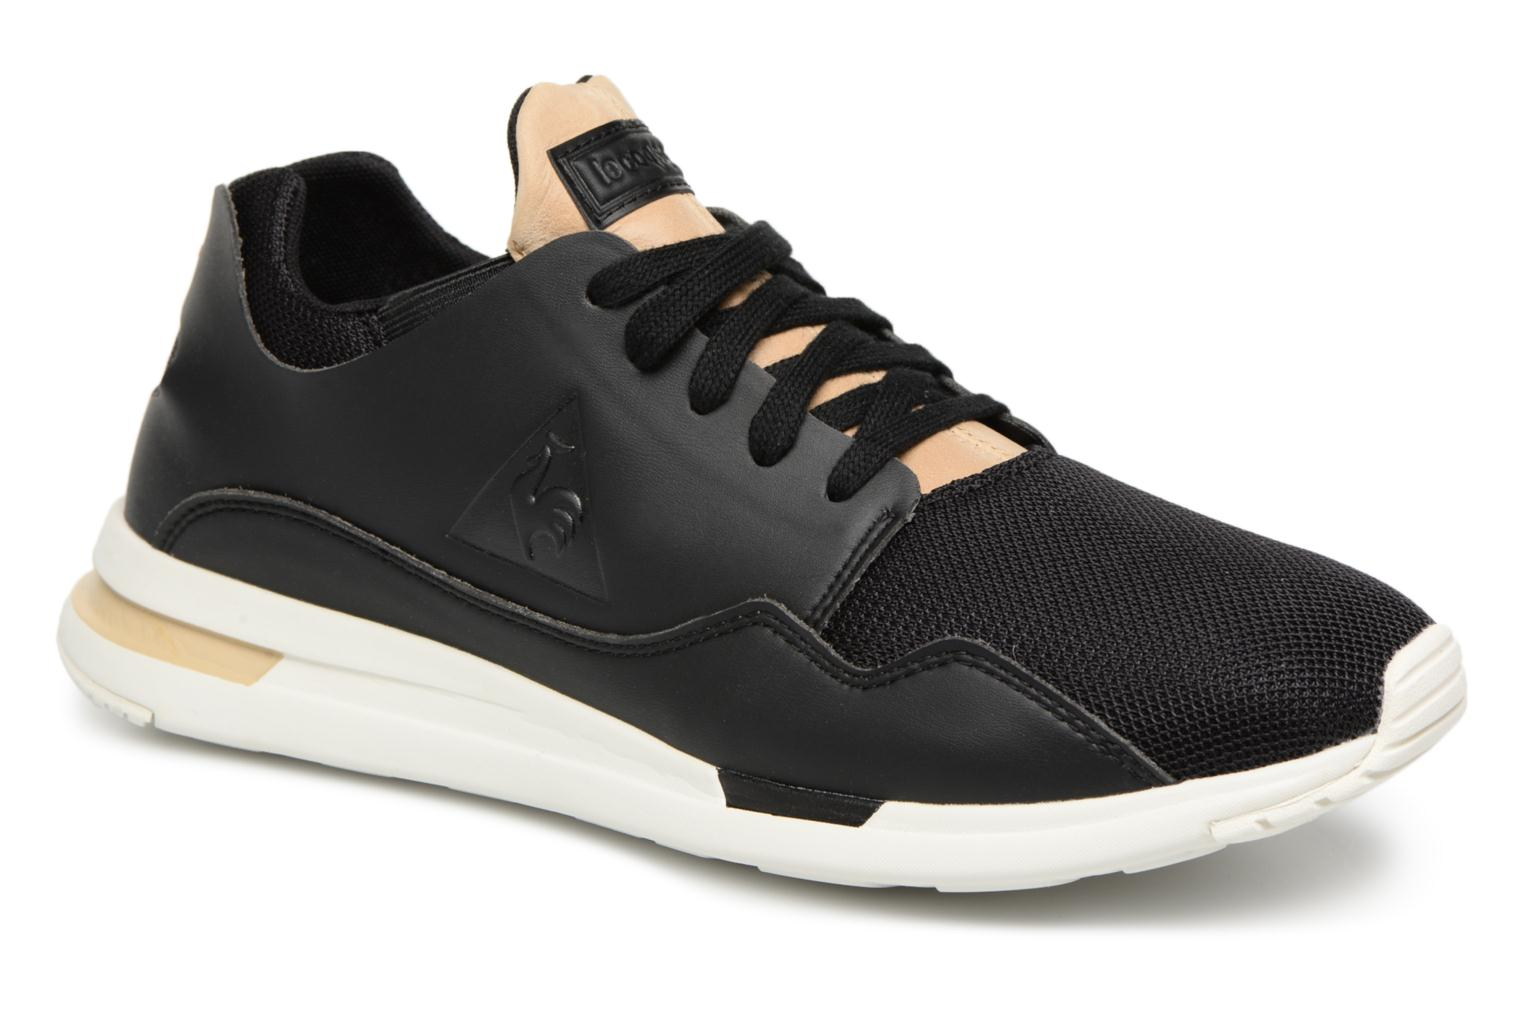 R Pure Leather/Tech Mesh